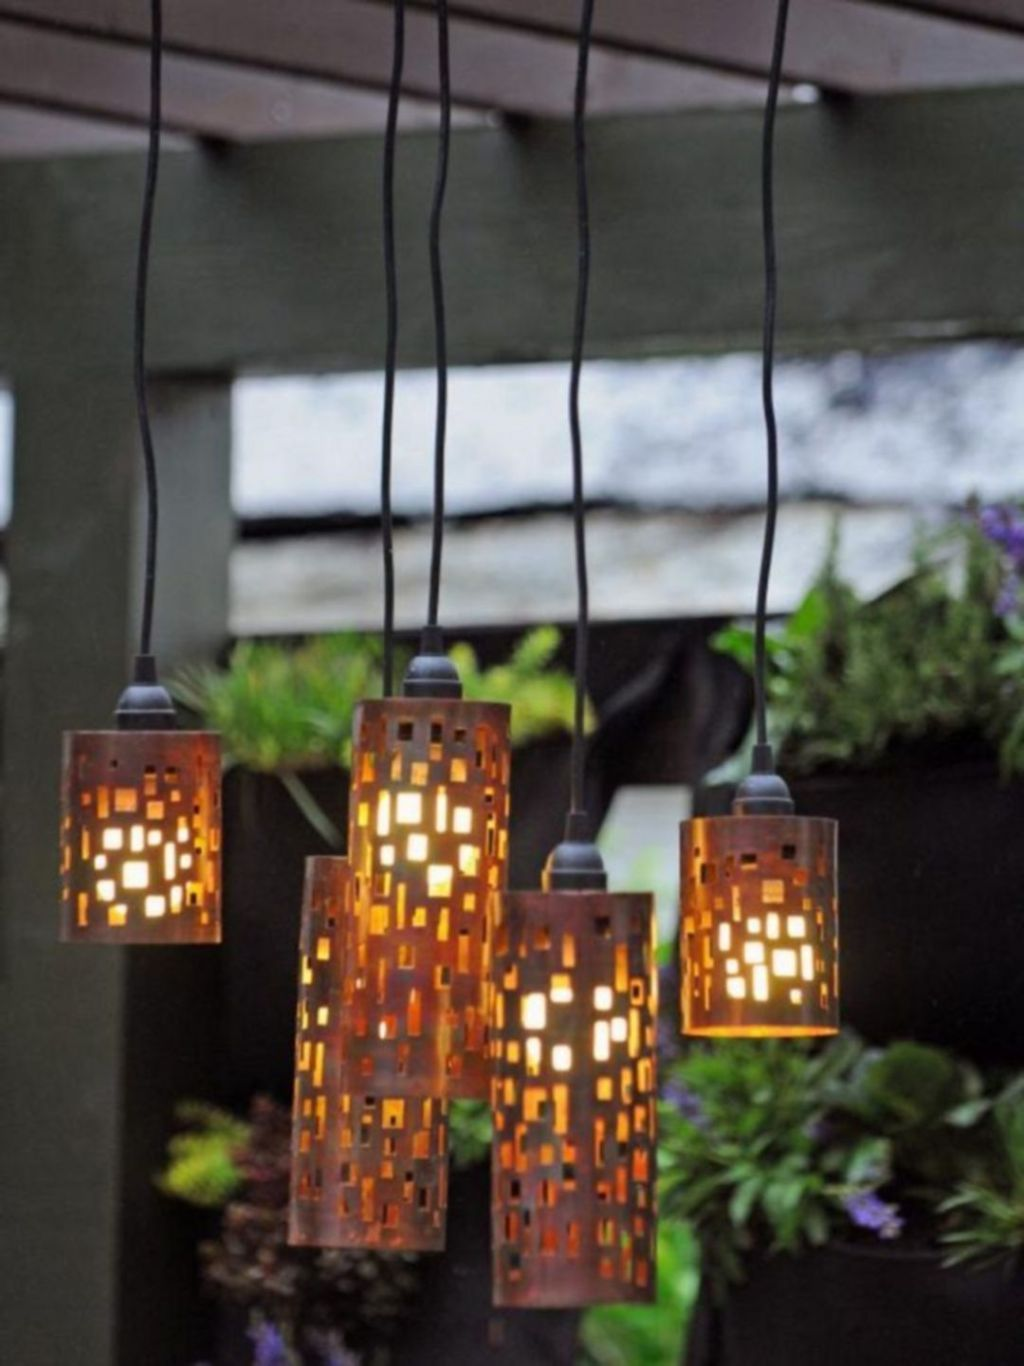 Inspiring Garden Lamps Ideas For Outdoors Decor 05